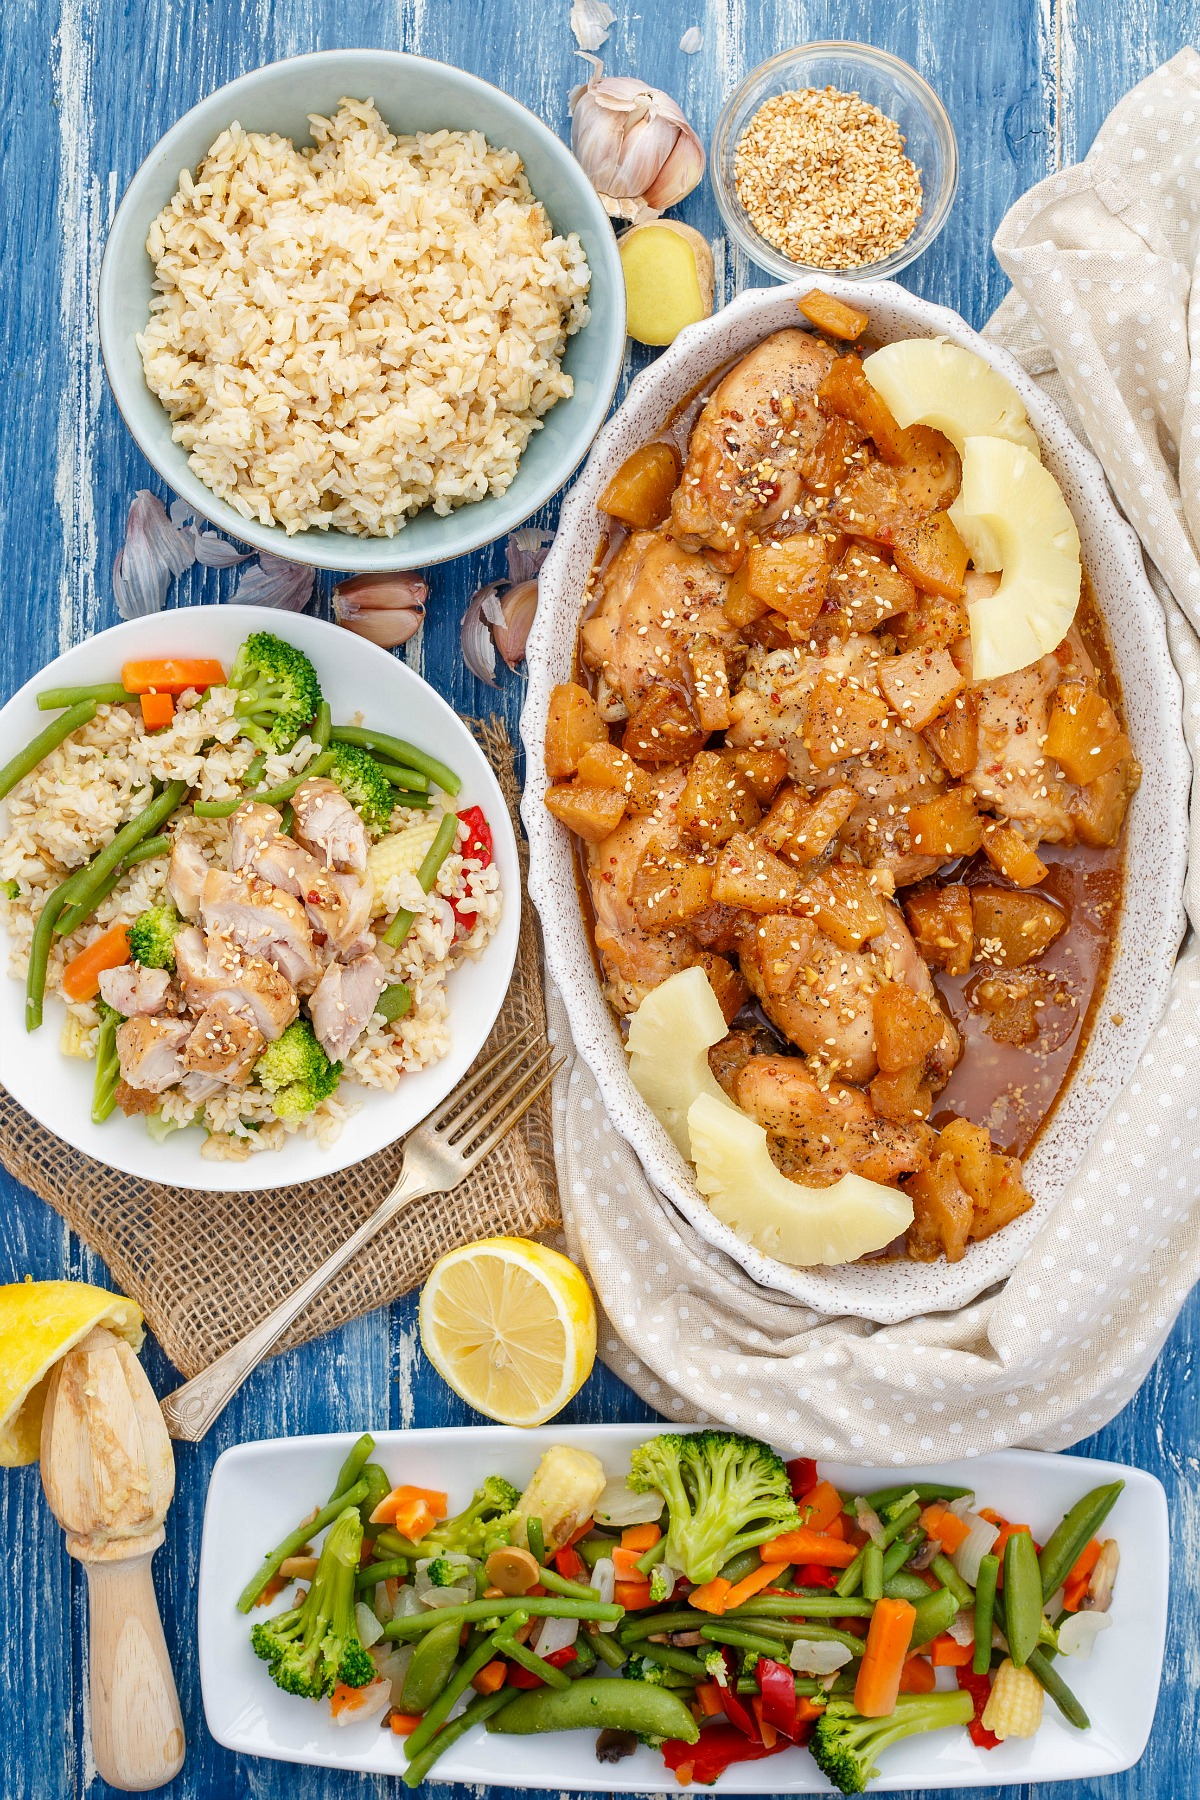 Warmer weather means more outside play and less time in the kitchen! This crockpot pineapple chicken recipe has all the flavors of summer, but the slow cooker won't heat up your house!